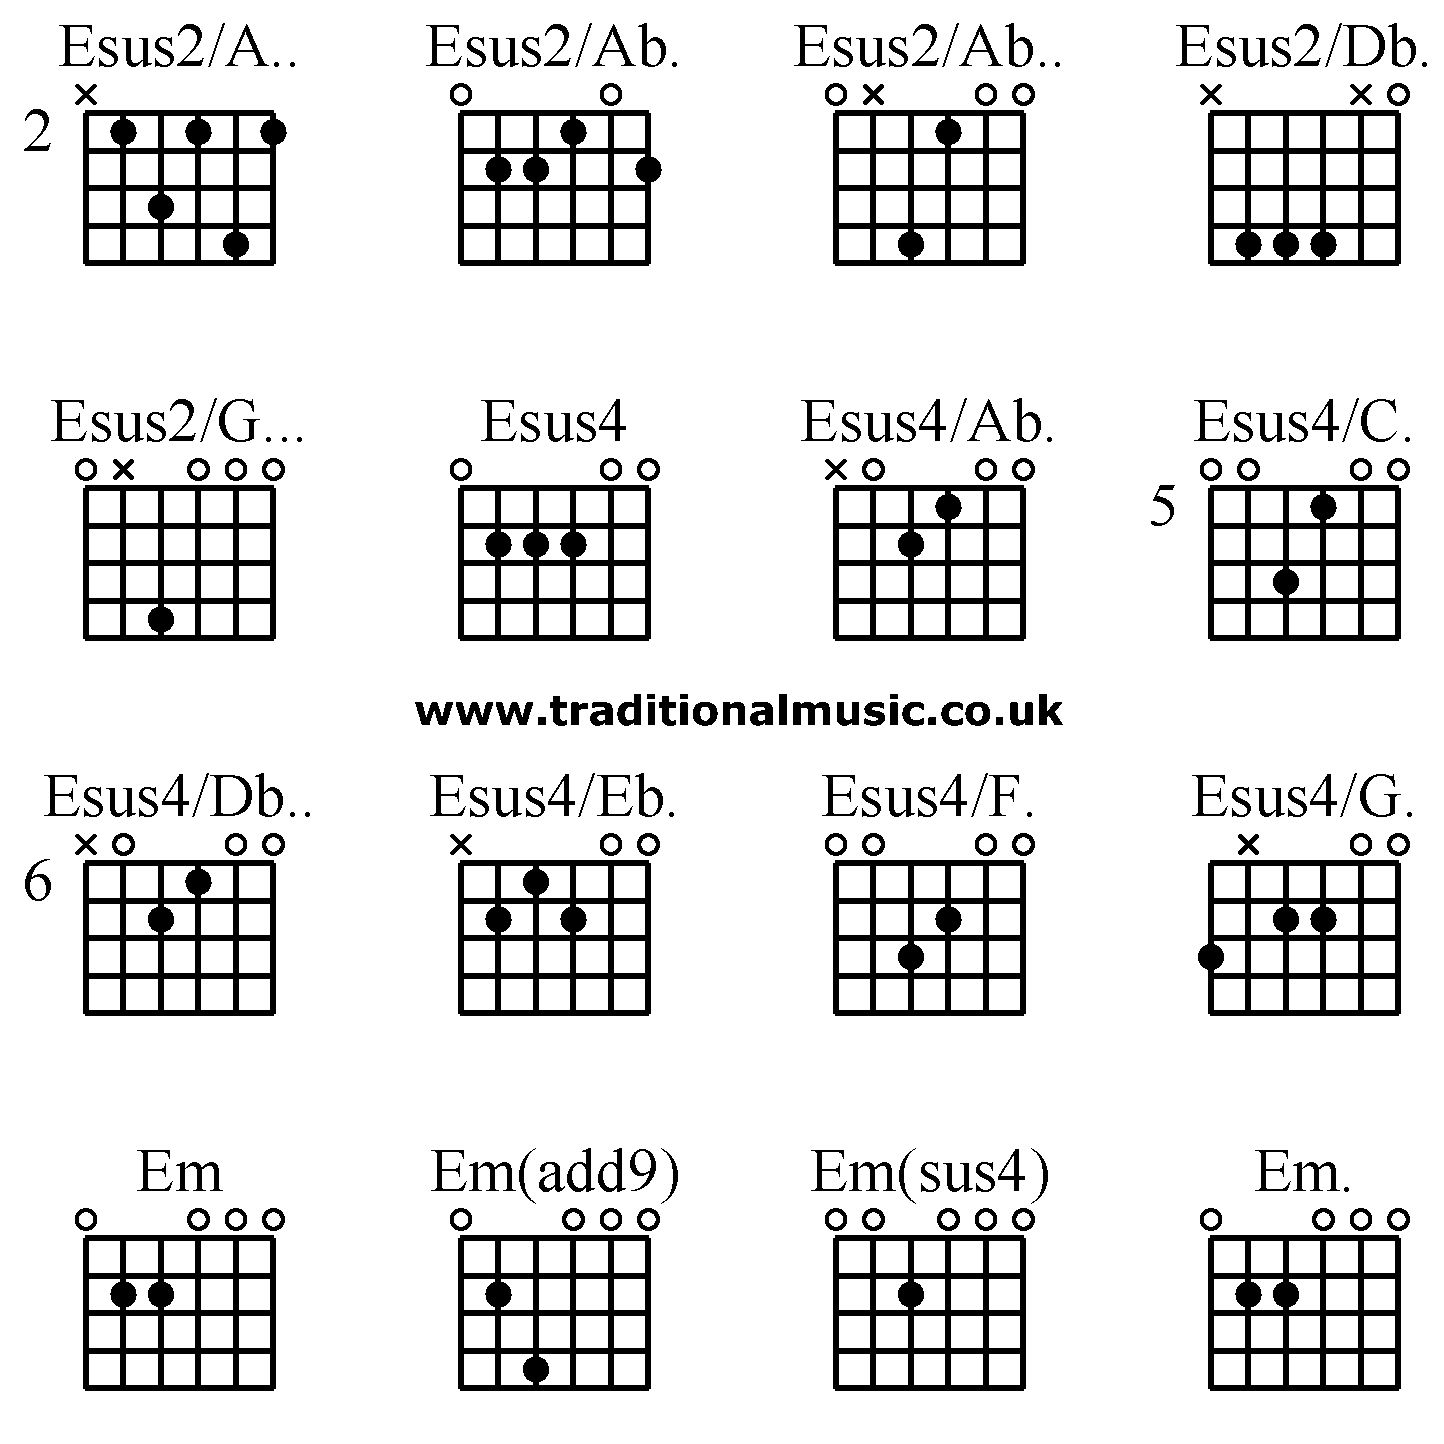 Guitar Chords Advanced Esus2a Esus2ab Esus2ab Esus2db